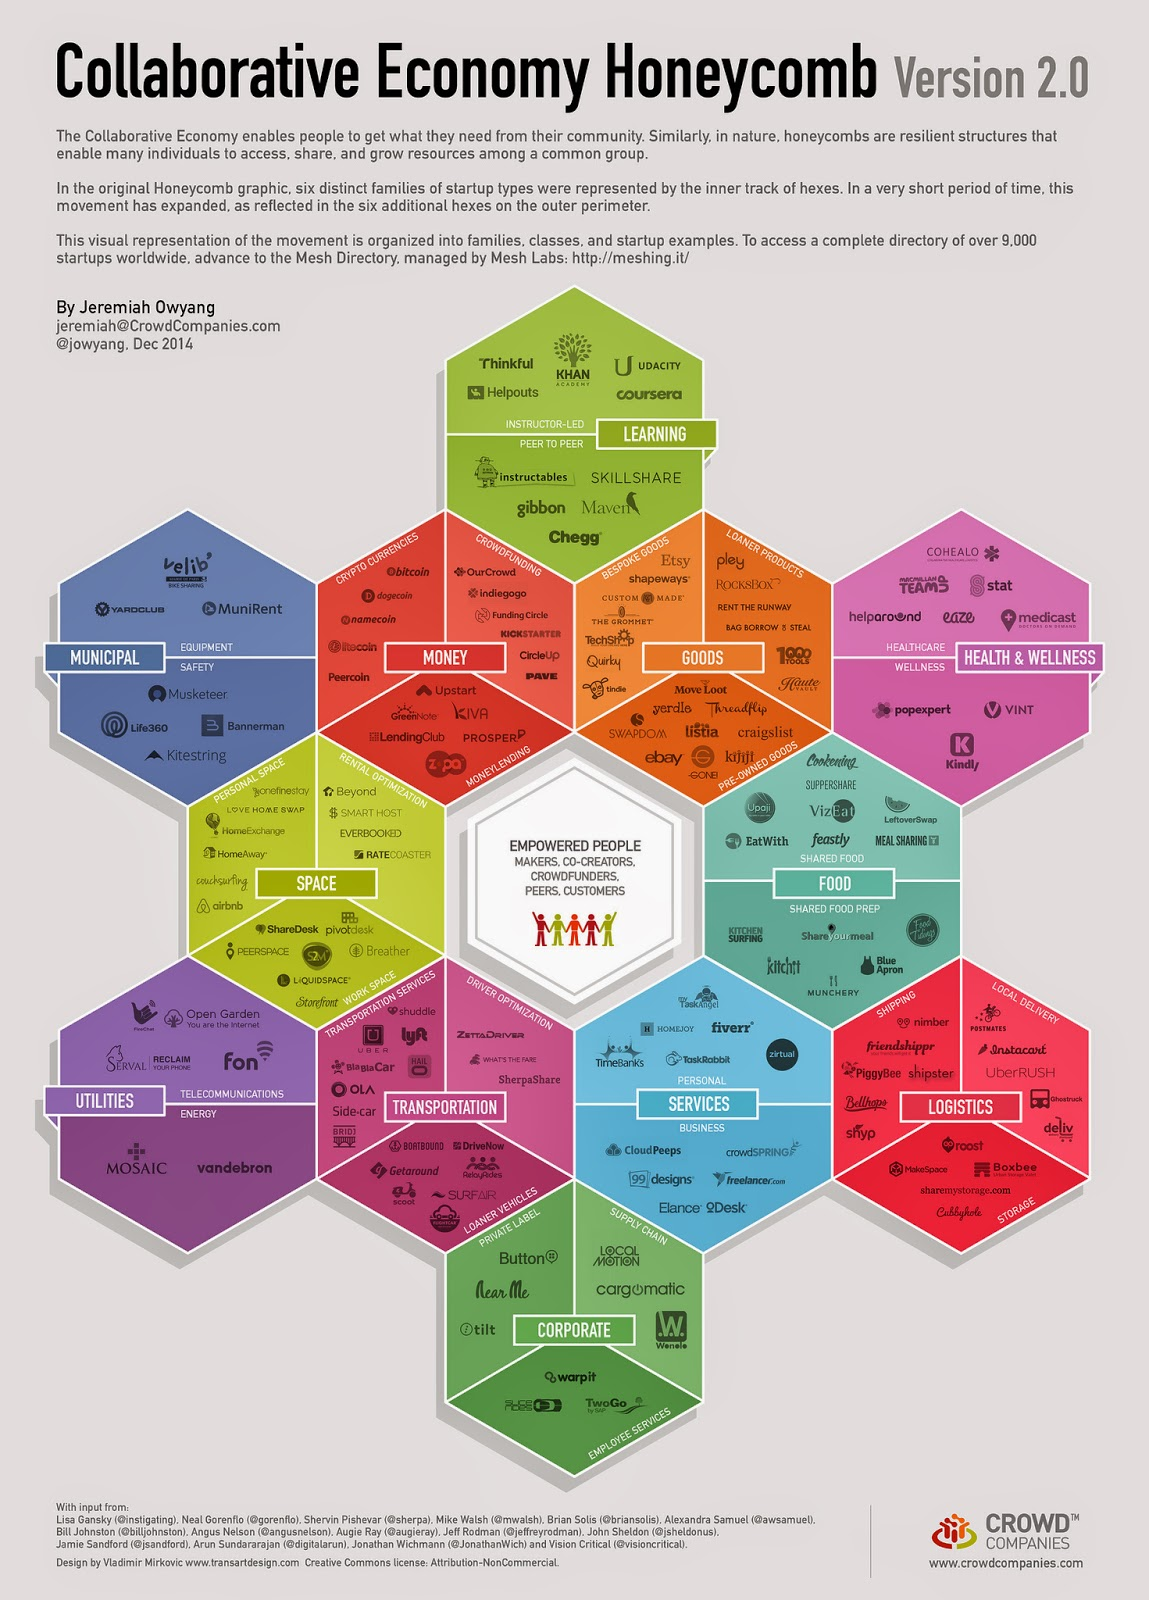 The evolution of the collaborative economy